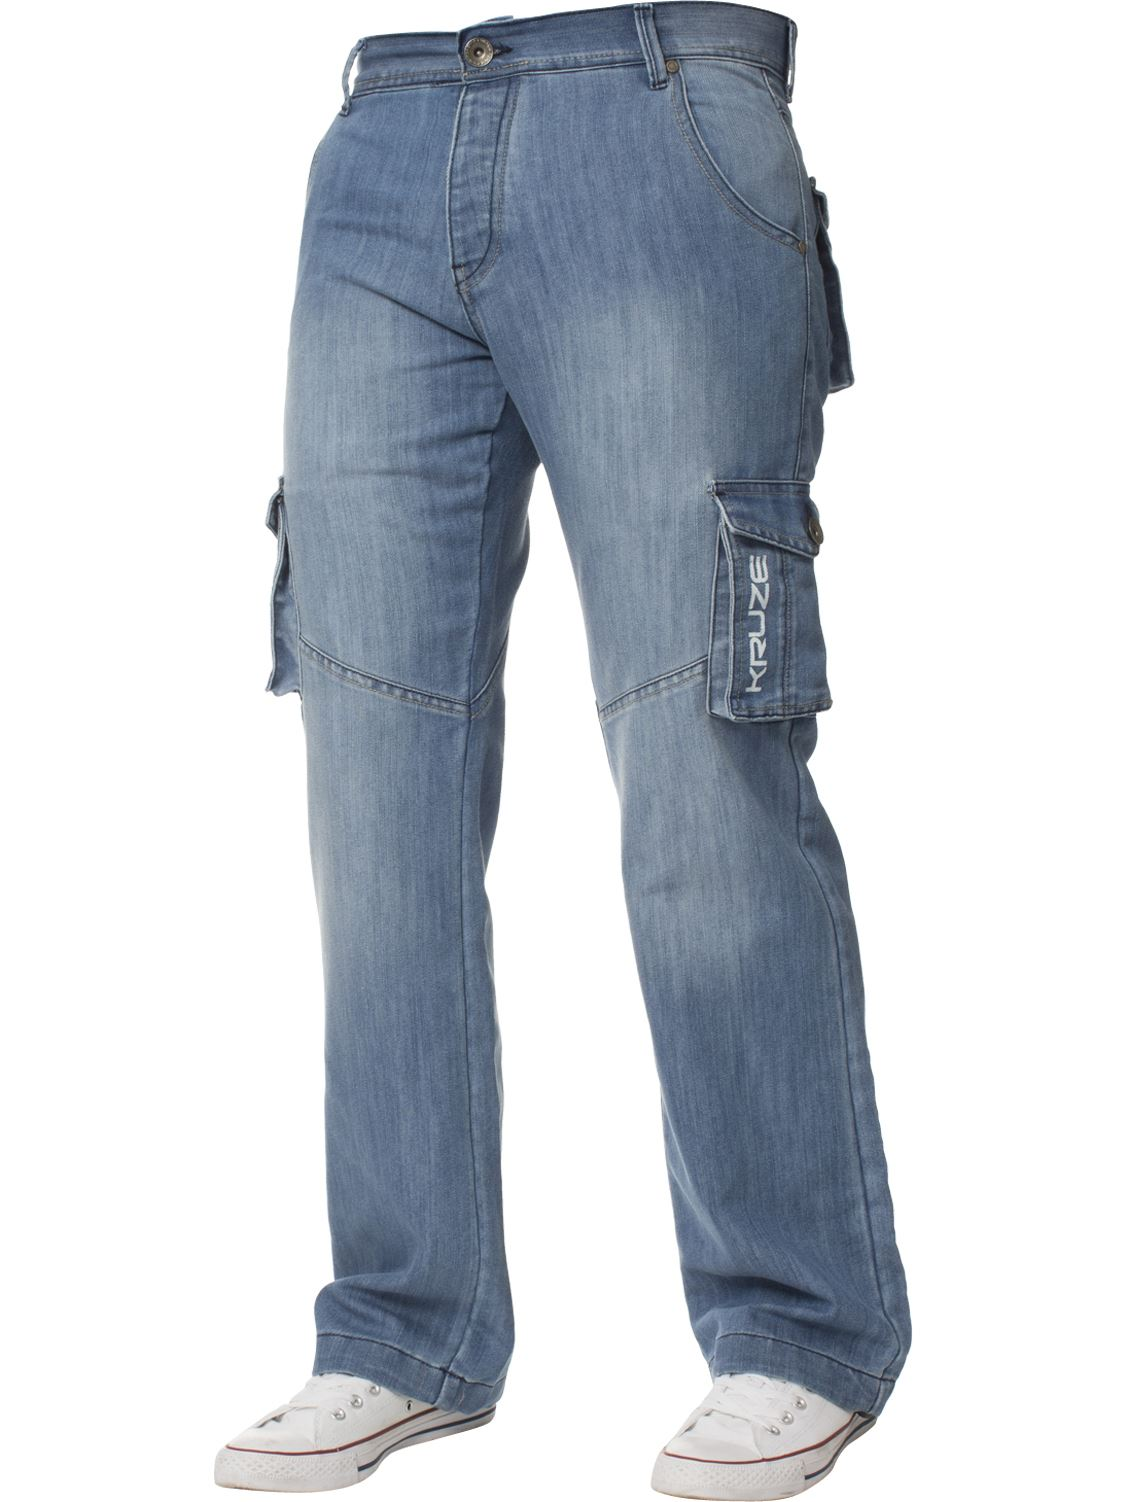 Mens-Cargo-Jeans-Combat-Trousers-Heavy-Duty-Work-Casual-Big-Tall-Denim-Pants thumbnail 76